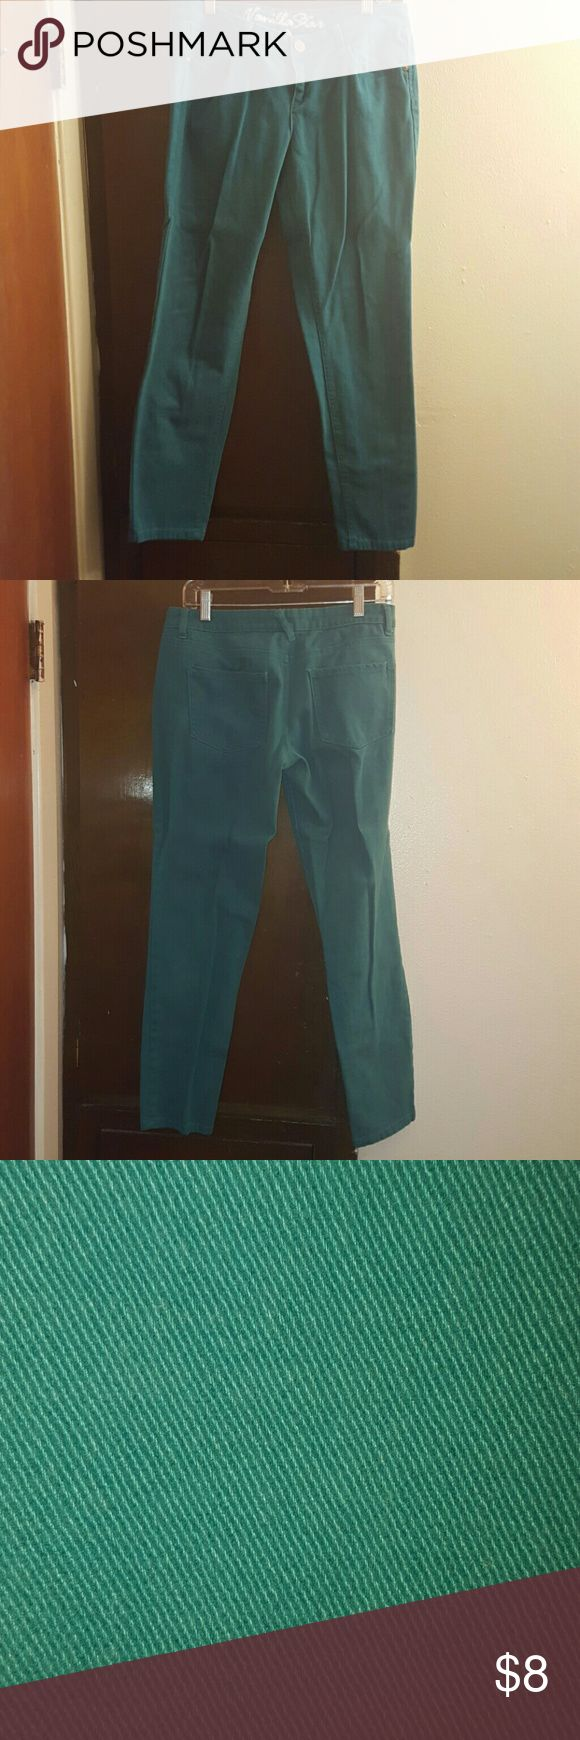 Turquoise jeans Like new jeans only worn once. Vanilla Star Jeans Skinny